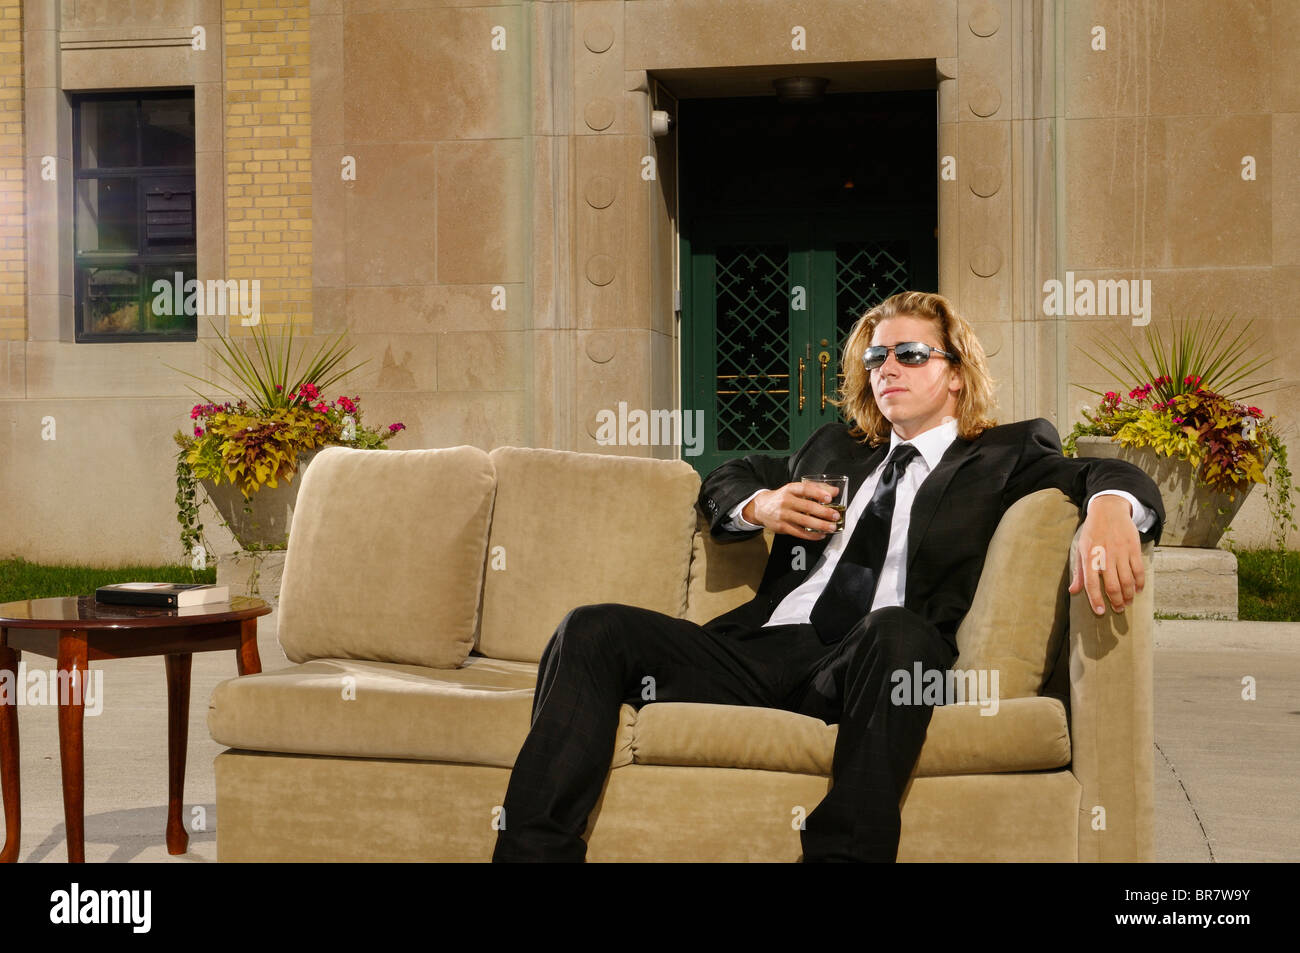 Wealthy young man with long blond hair in suit sitting on a couch with a drink on an outdoor terrace at a mansion - Stock Image